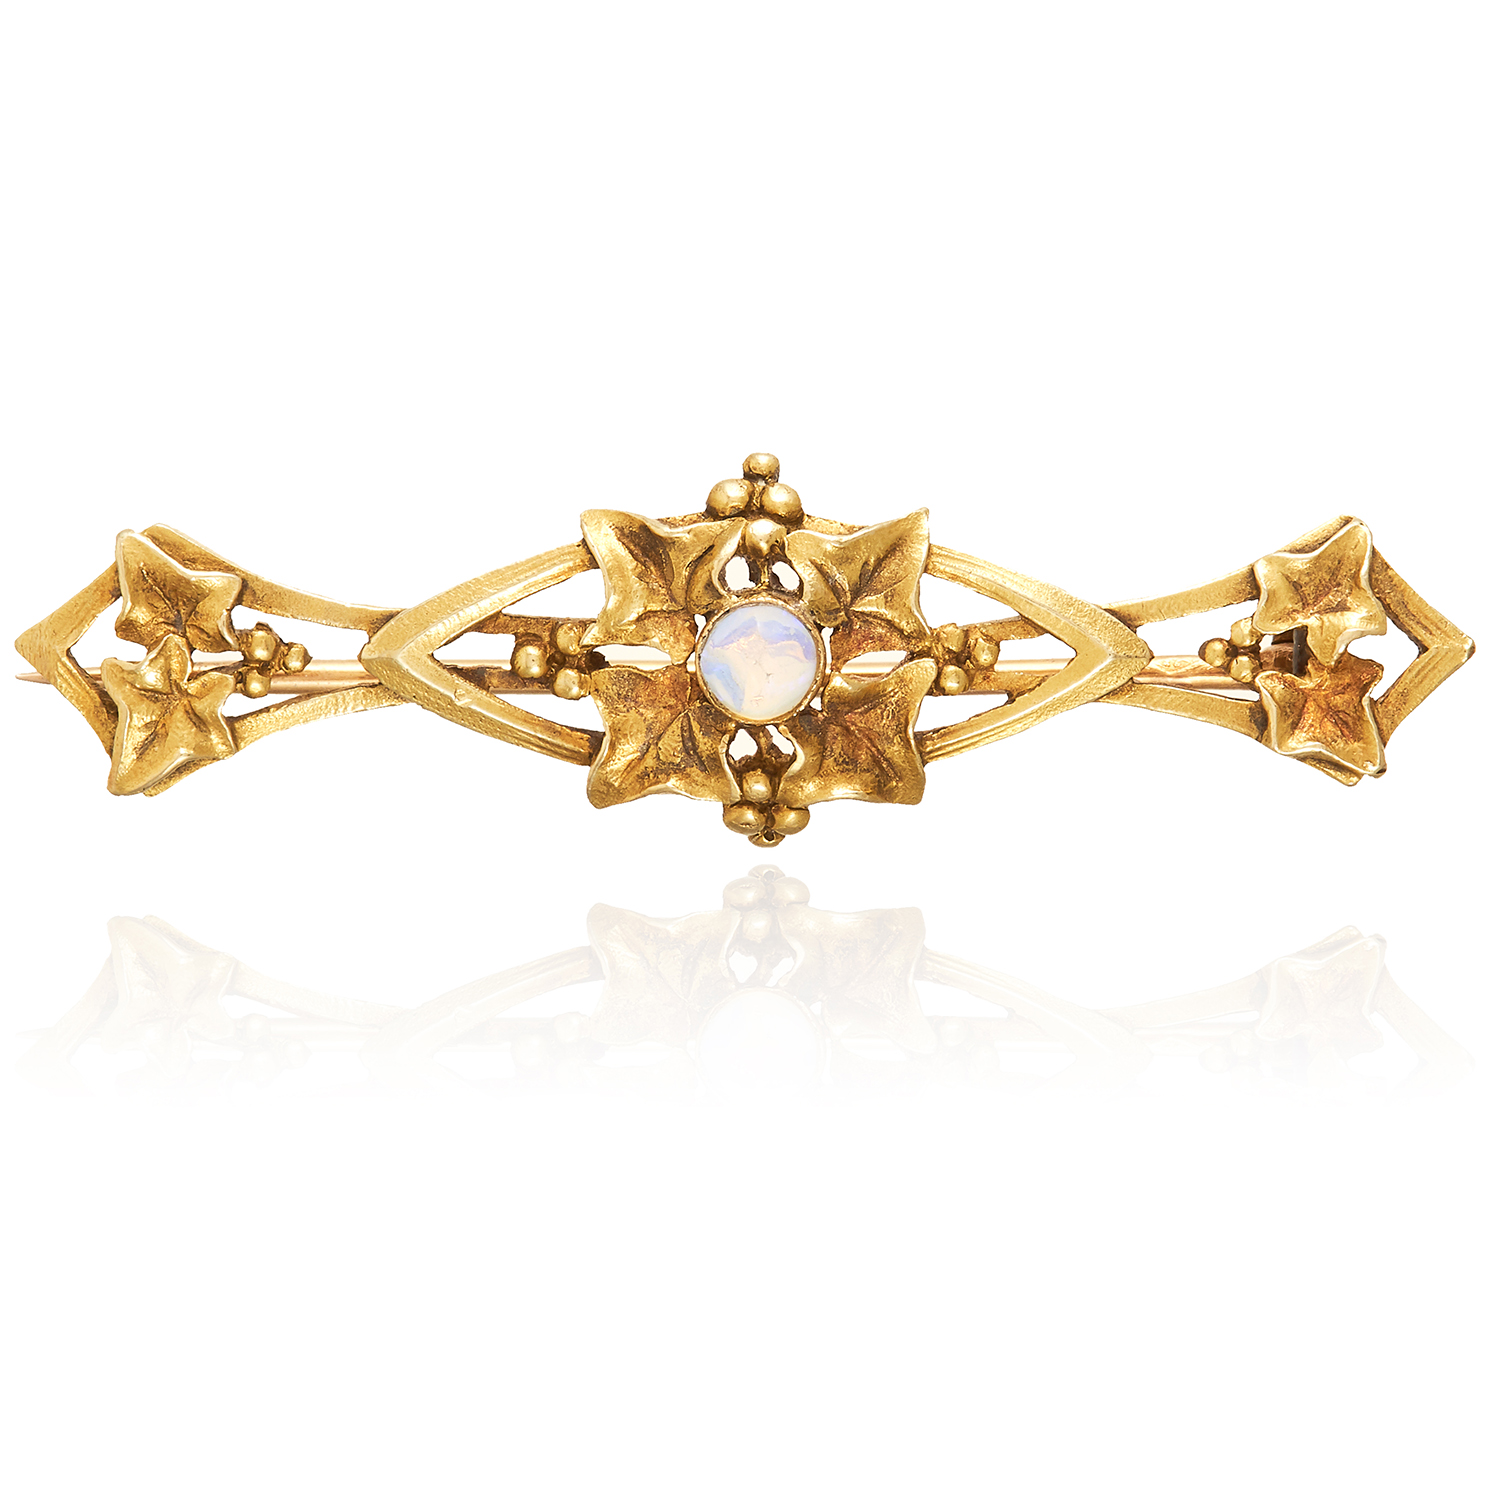 AN OPAL BAR BROOCH, FRENCH in high carat yellow gold, in Art Nouveau design set with a cabochon